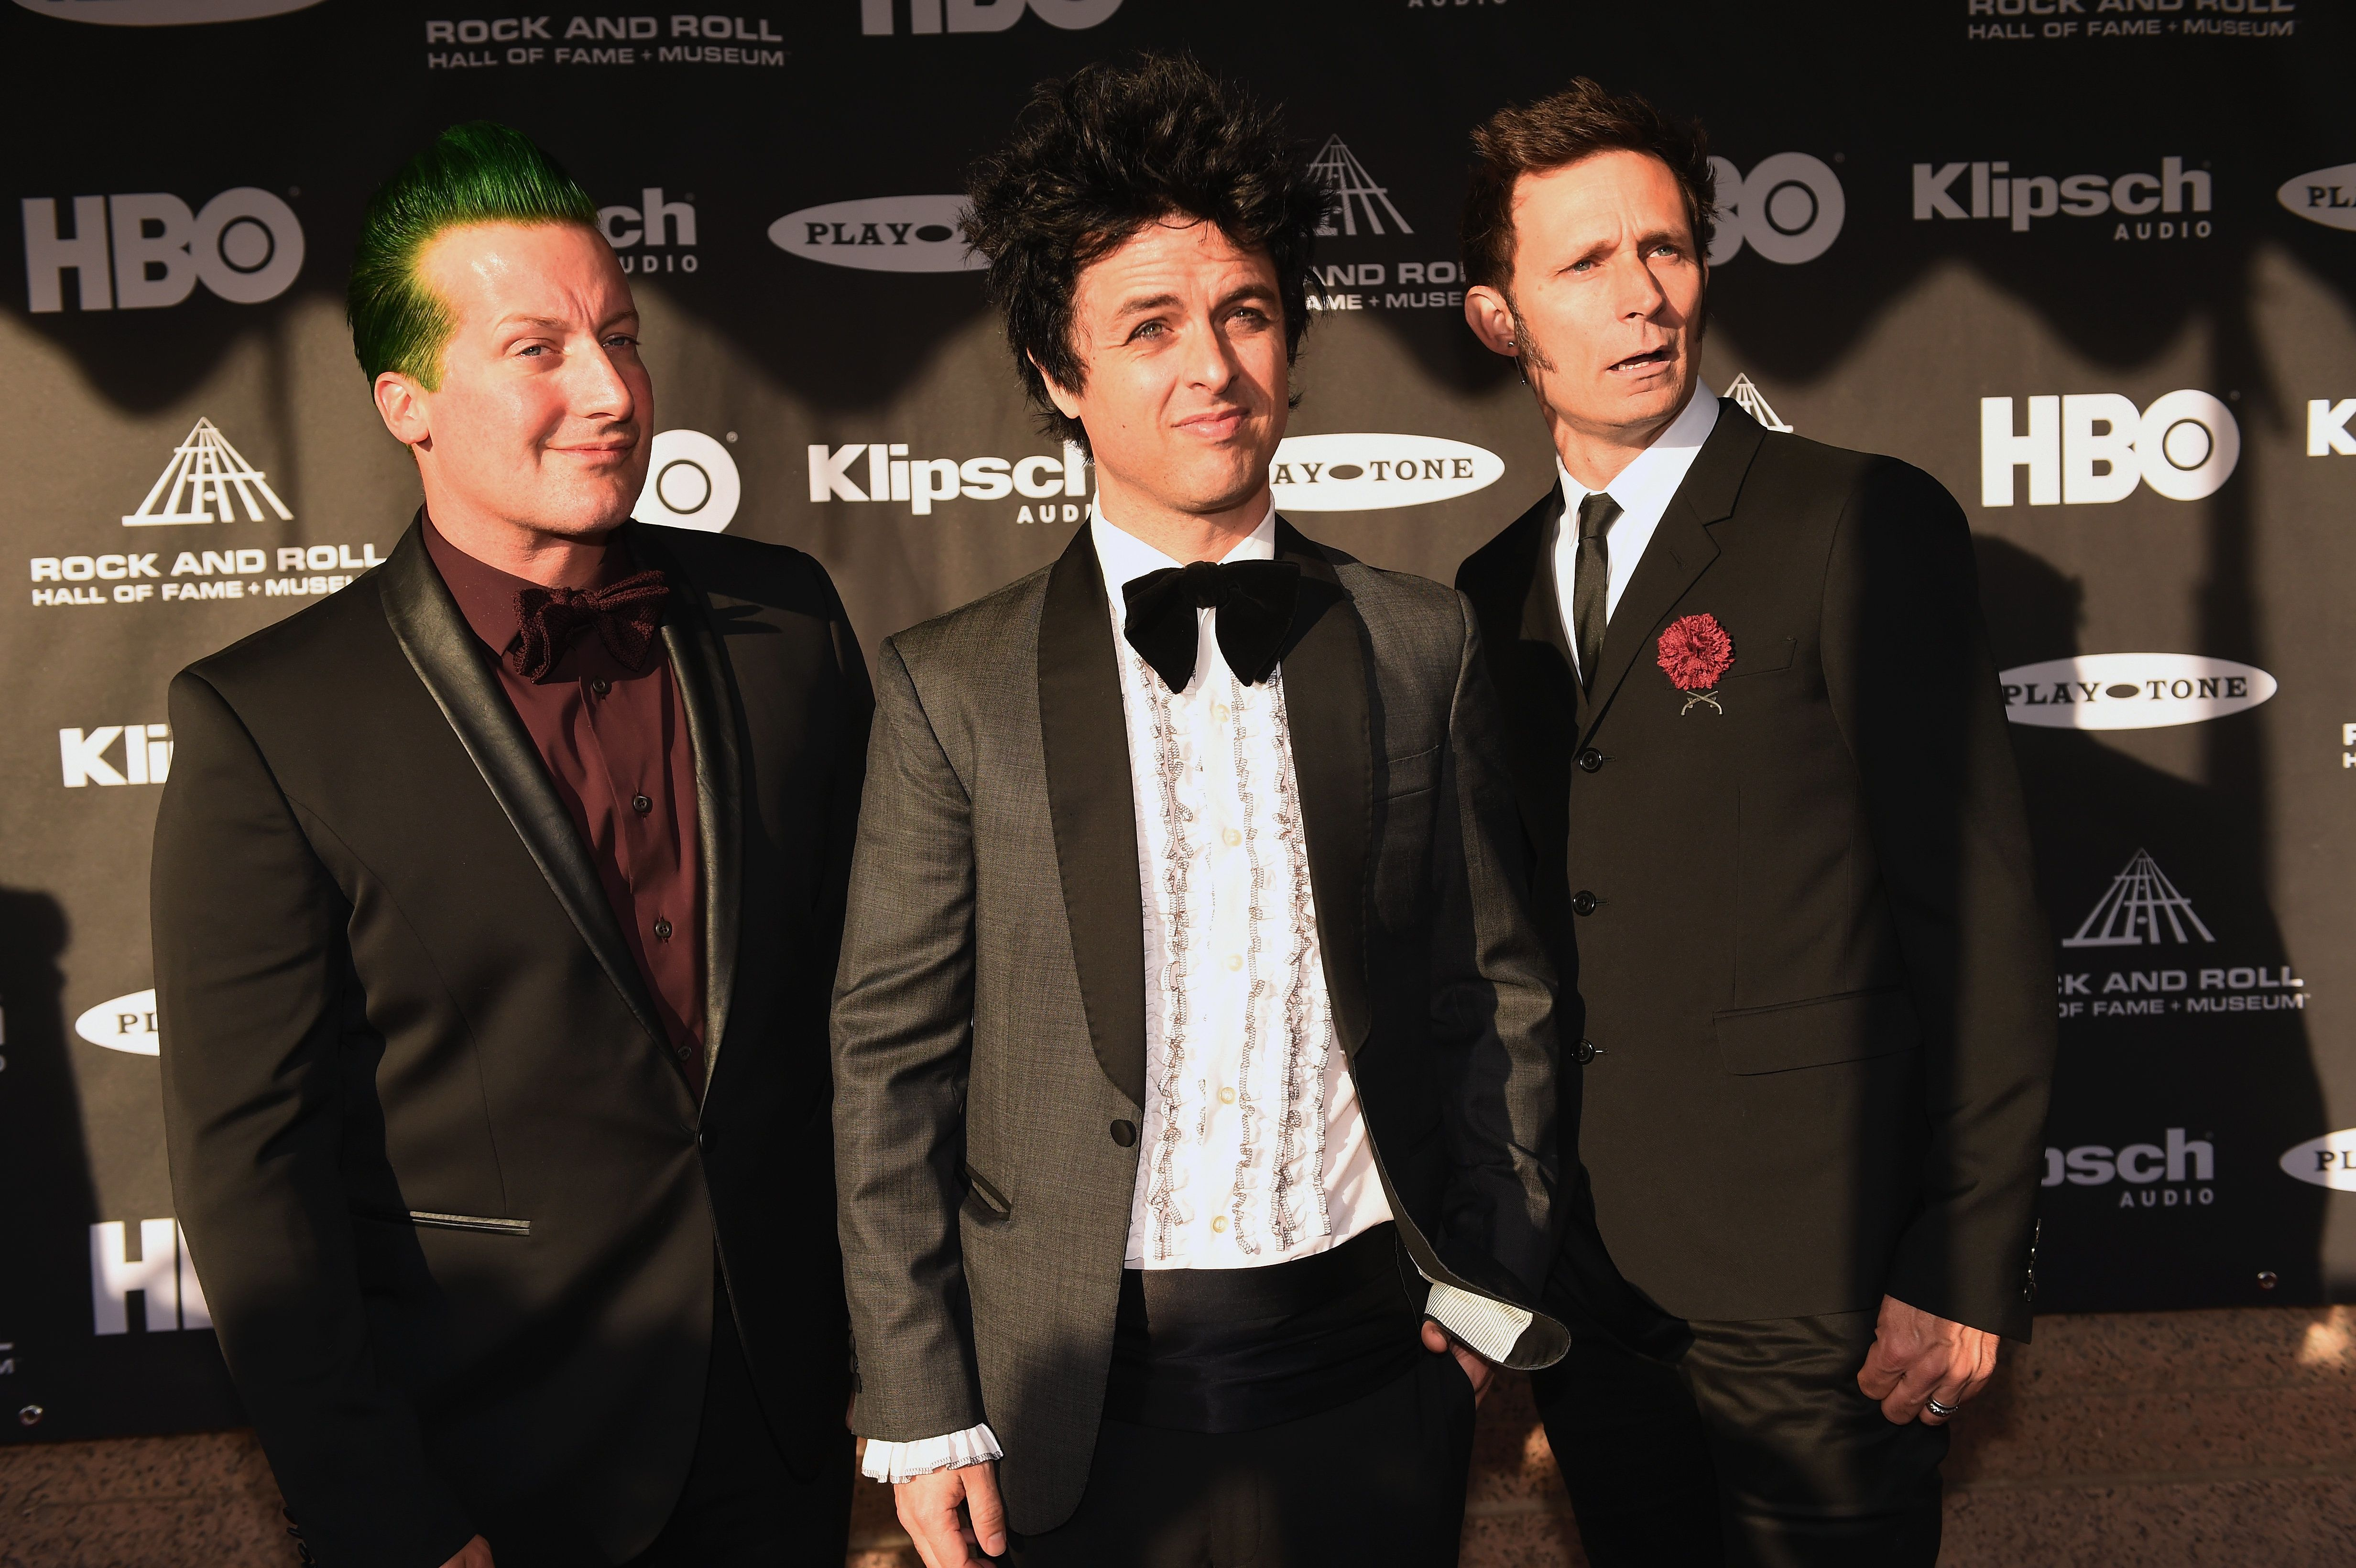 CLEVELAND, OH - APRIL 18:  (L-R) Musicians Tre Cool, Billie Joe Armstrong and Mike Dirnt of Green Day attend the 30th Annual Rock And Roll Hall Of Fame Induction Ceremony at Public Hall on April 18, 2015 in Cleveland, Ohio.  (Photo by Jeff Kravitz/FilmMagic)